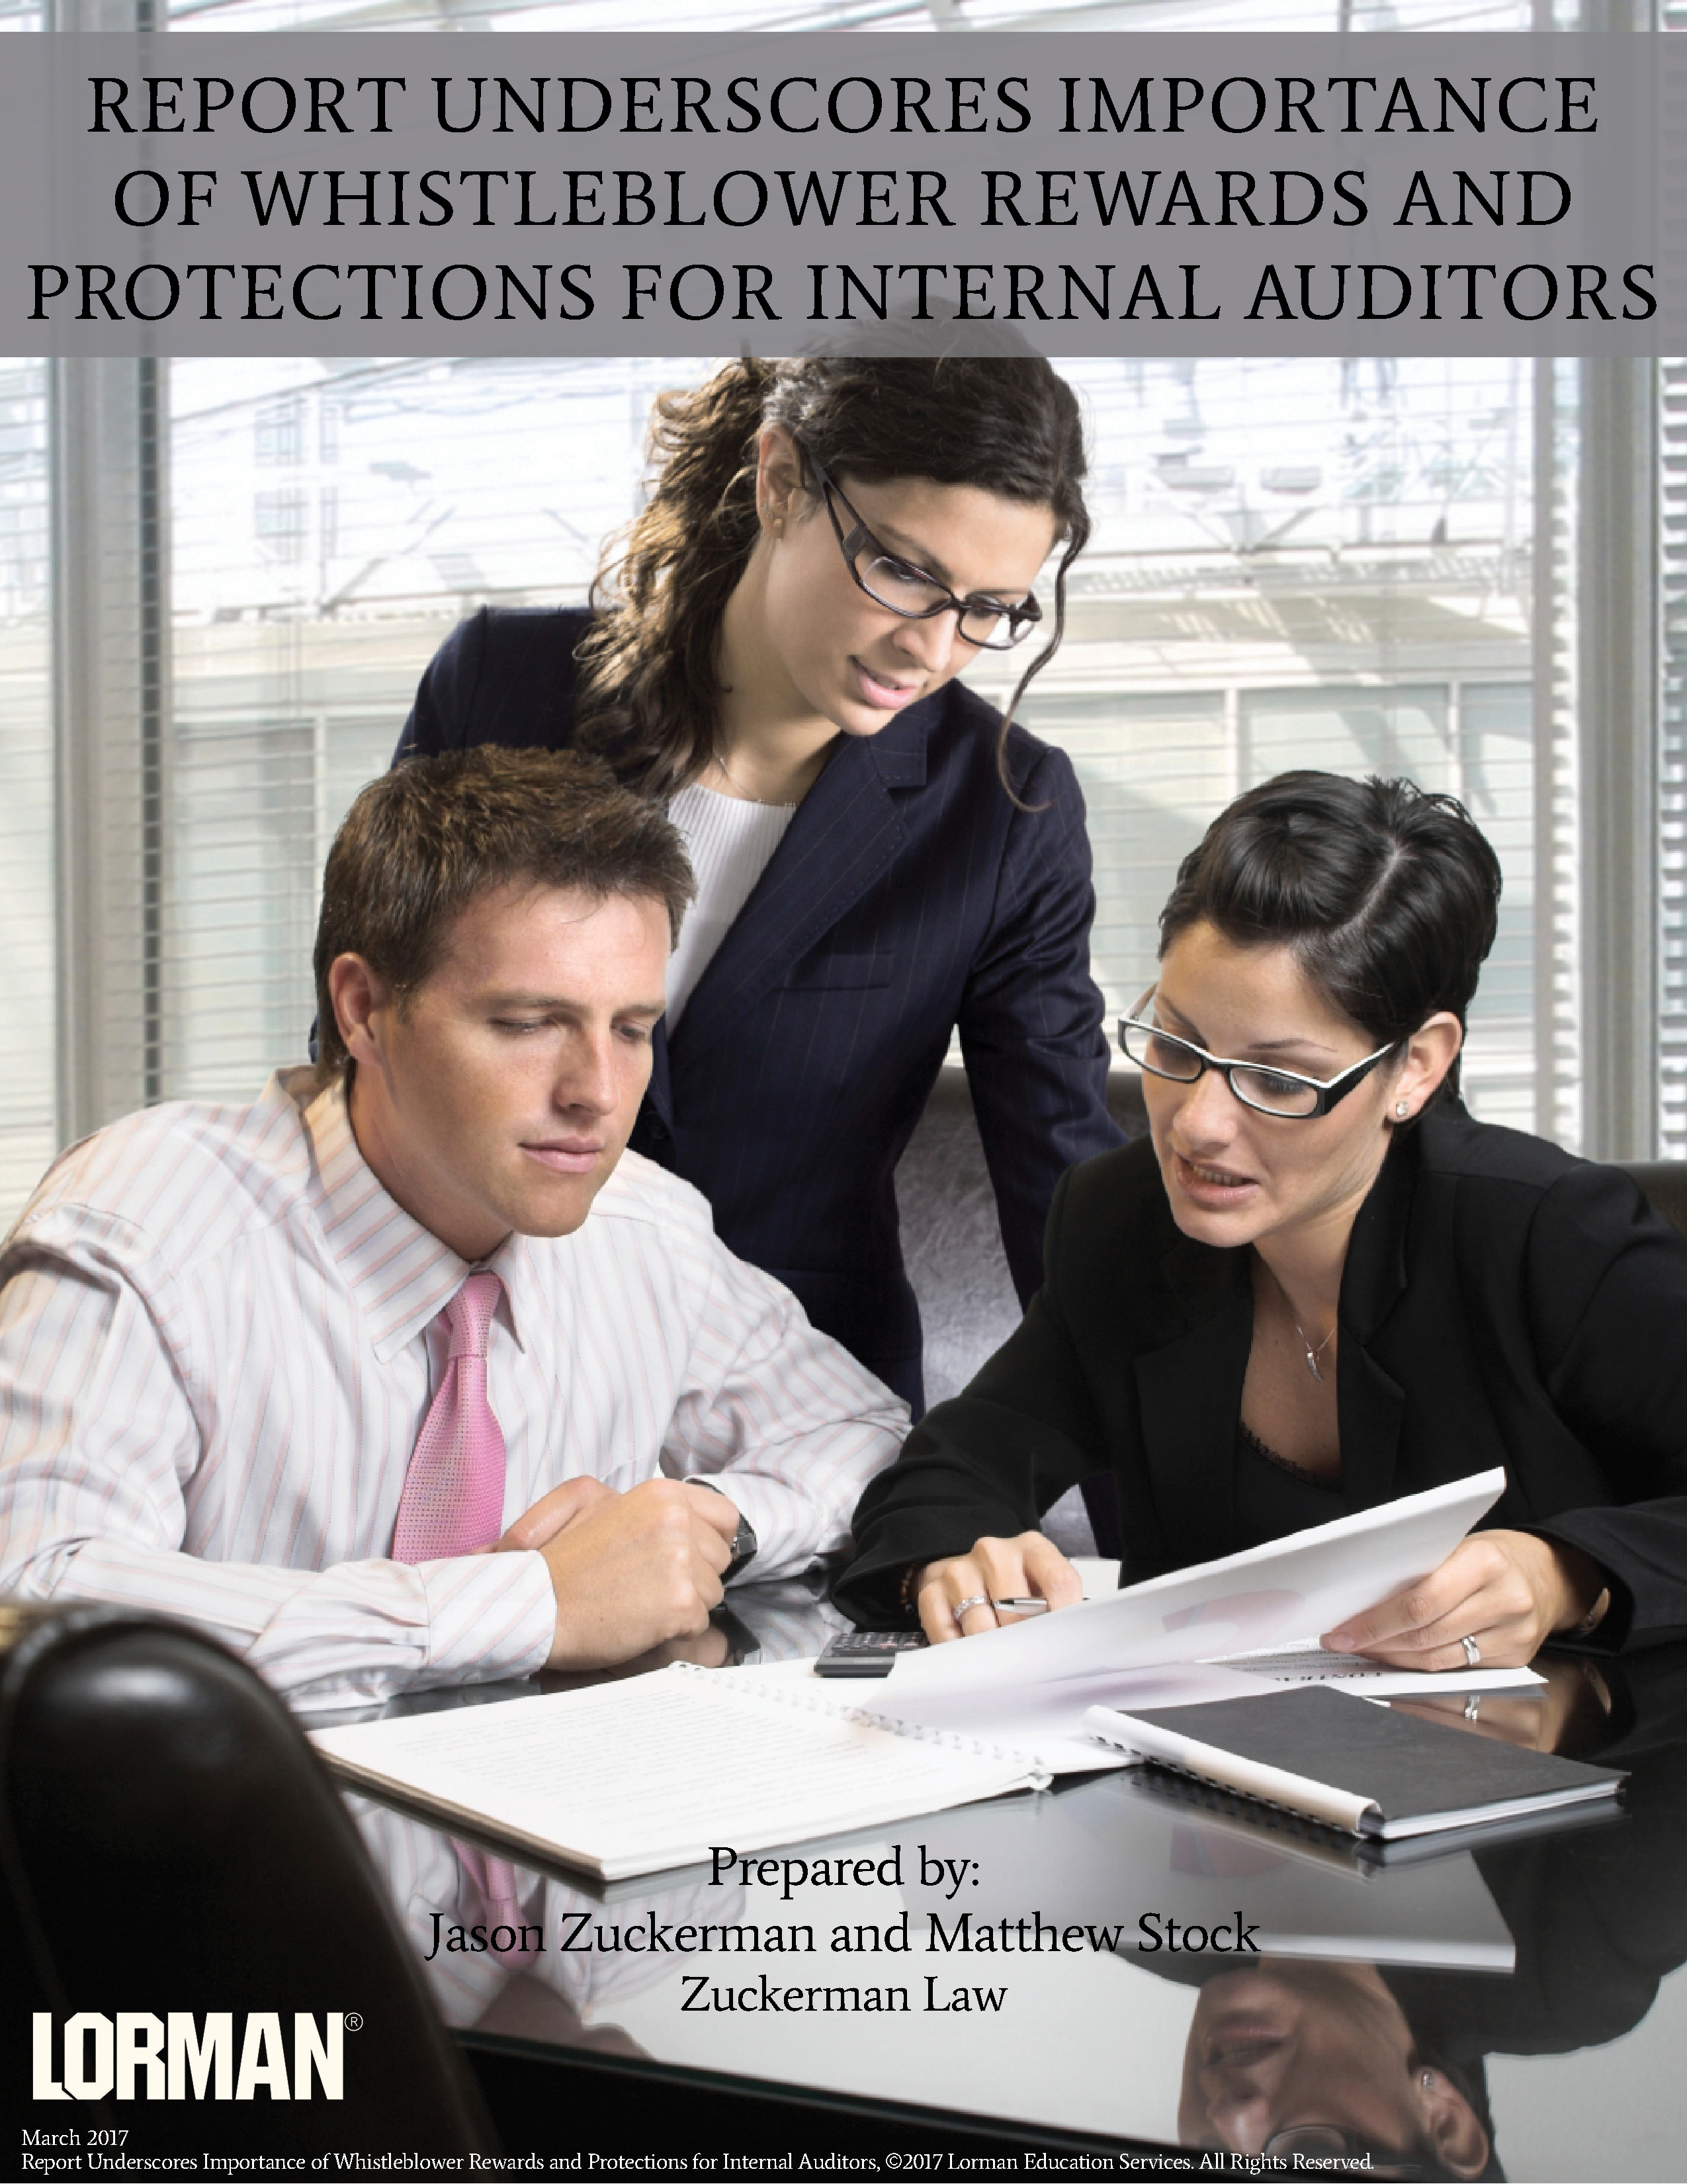 Report Underscores Importance of Whistleblower Rewards and Protections for Internal Auditors